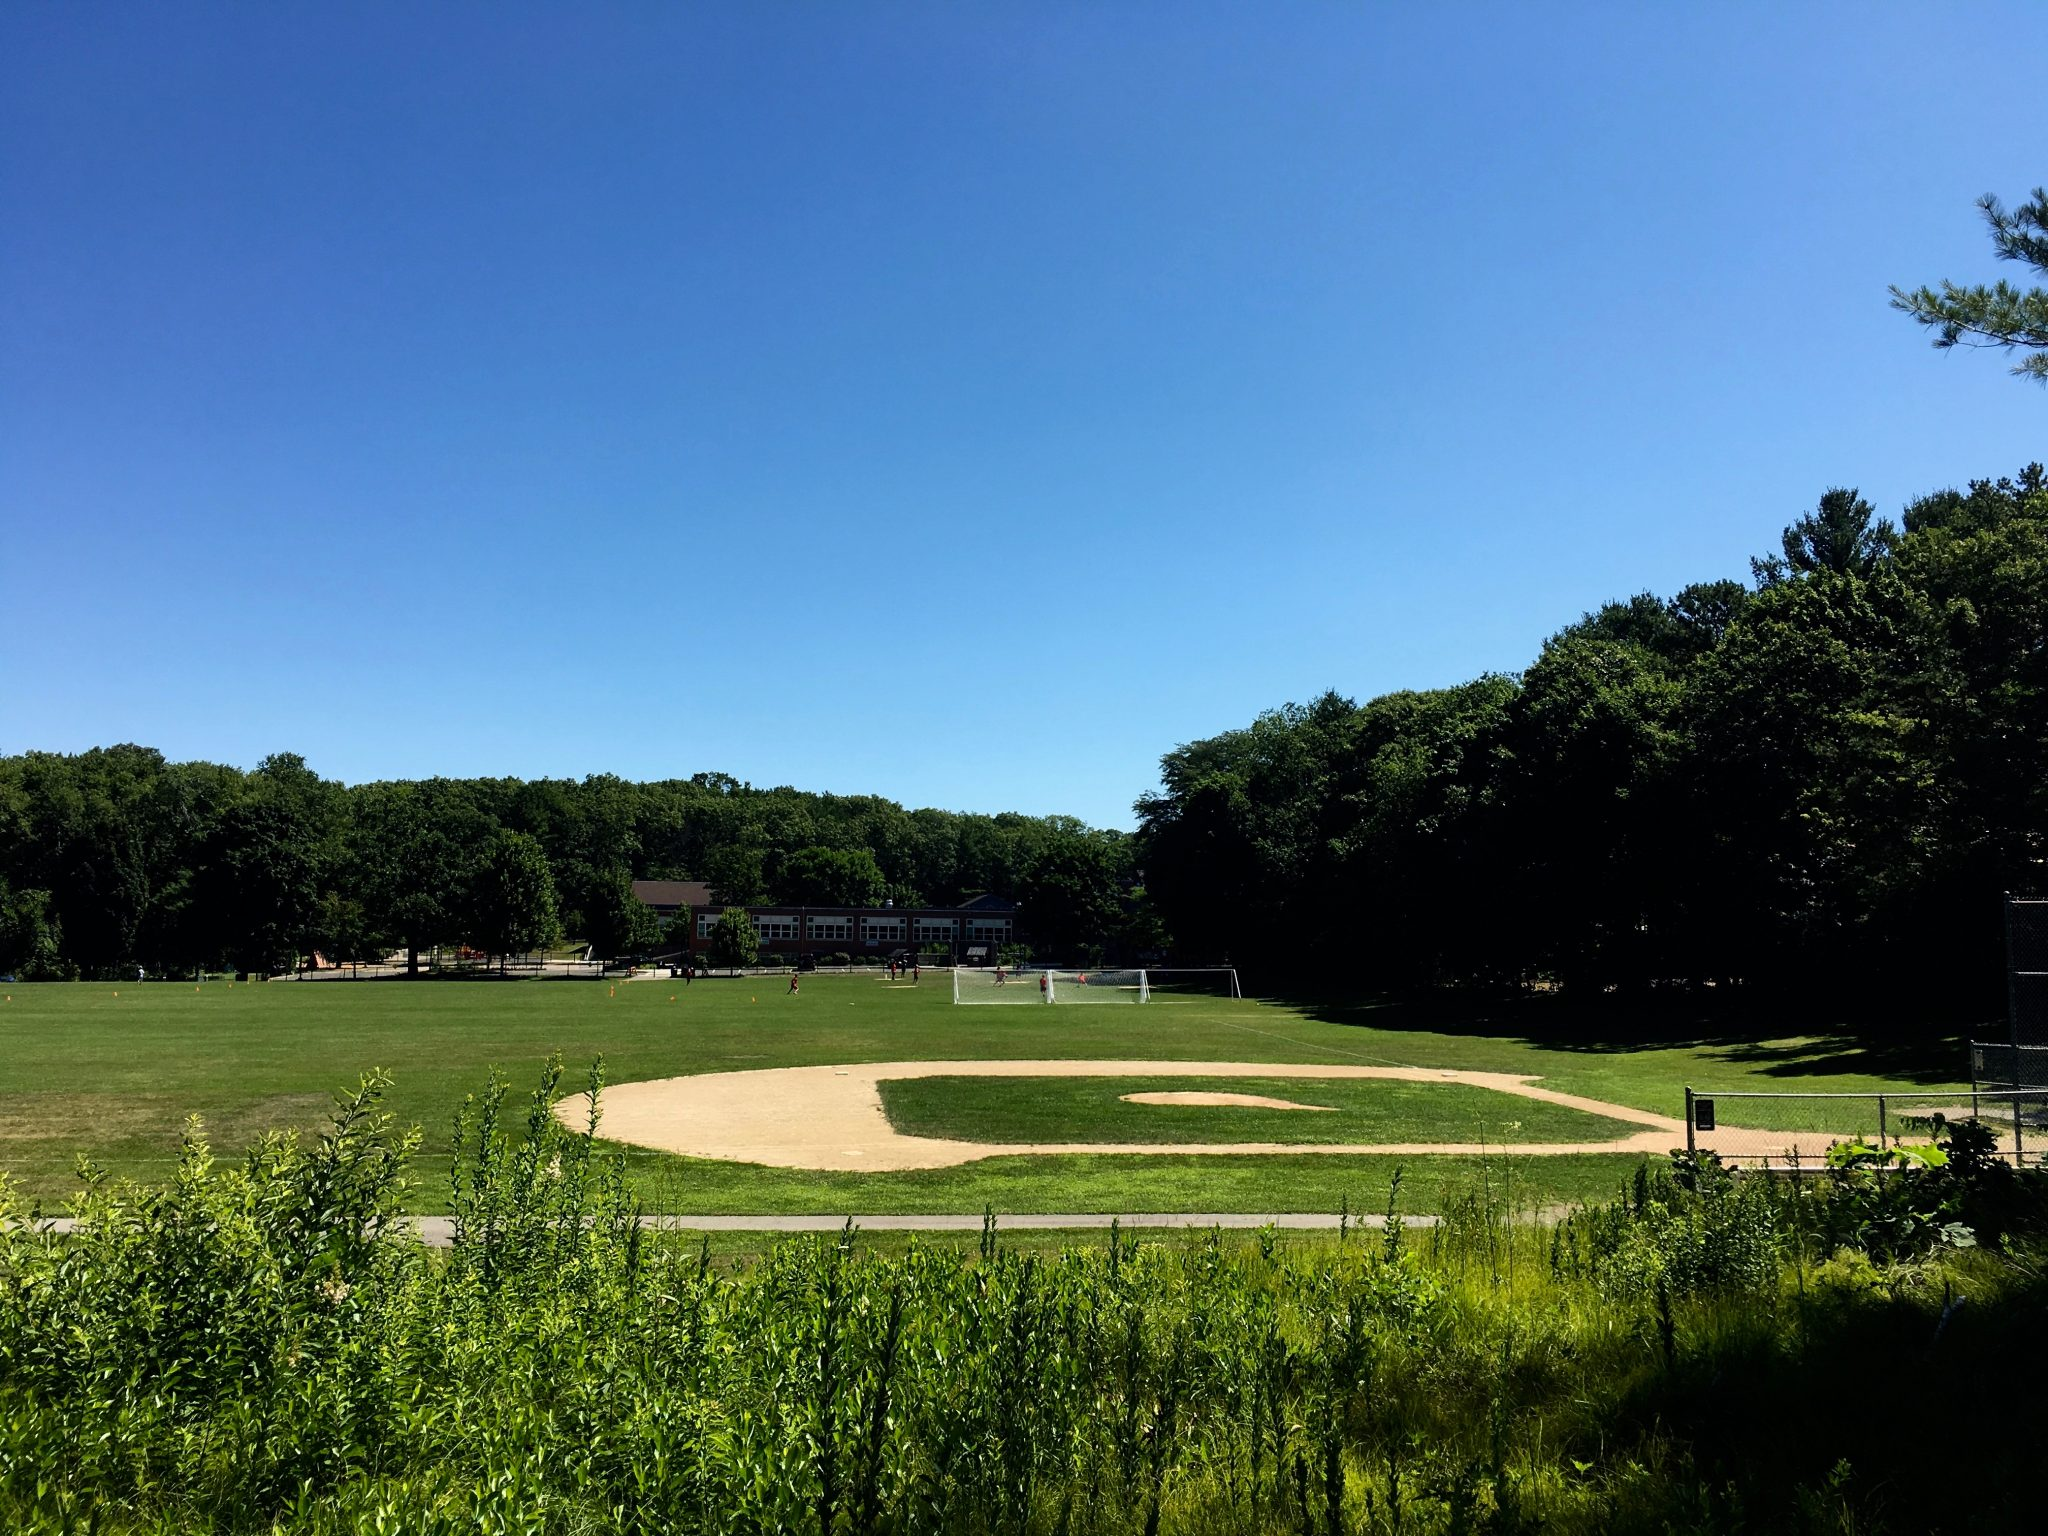 Kelly Field, baseball diamond, Wellesley